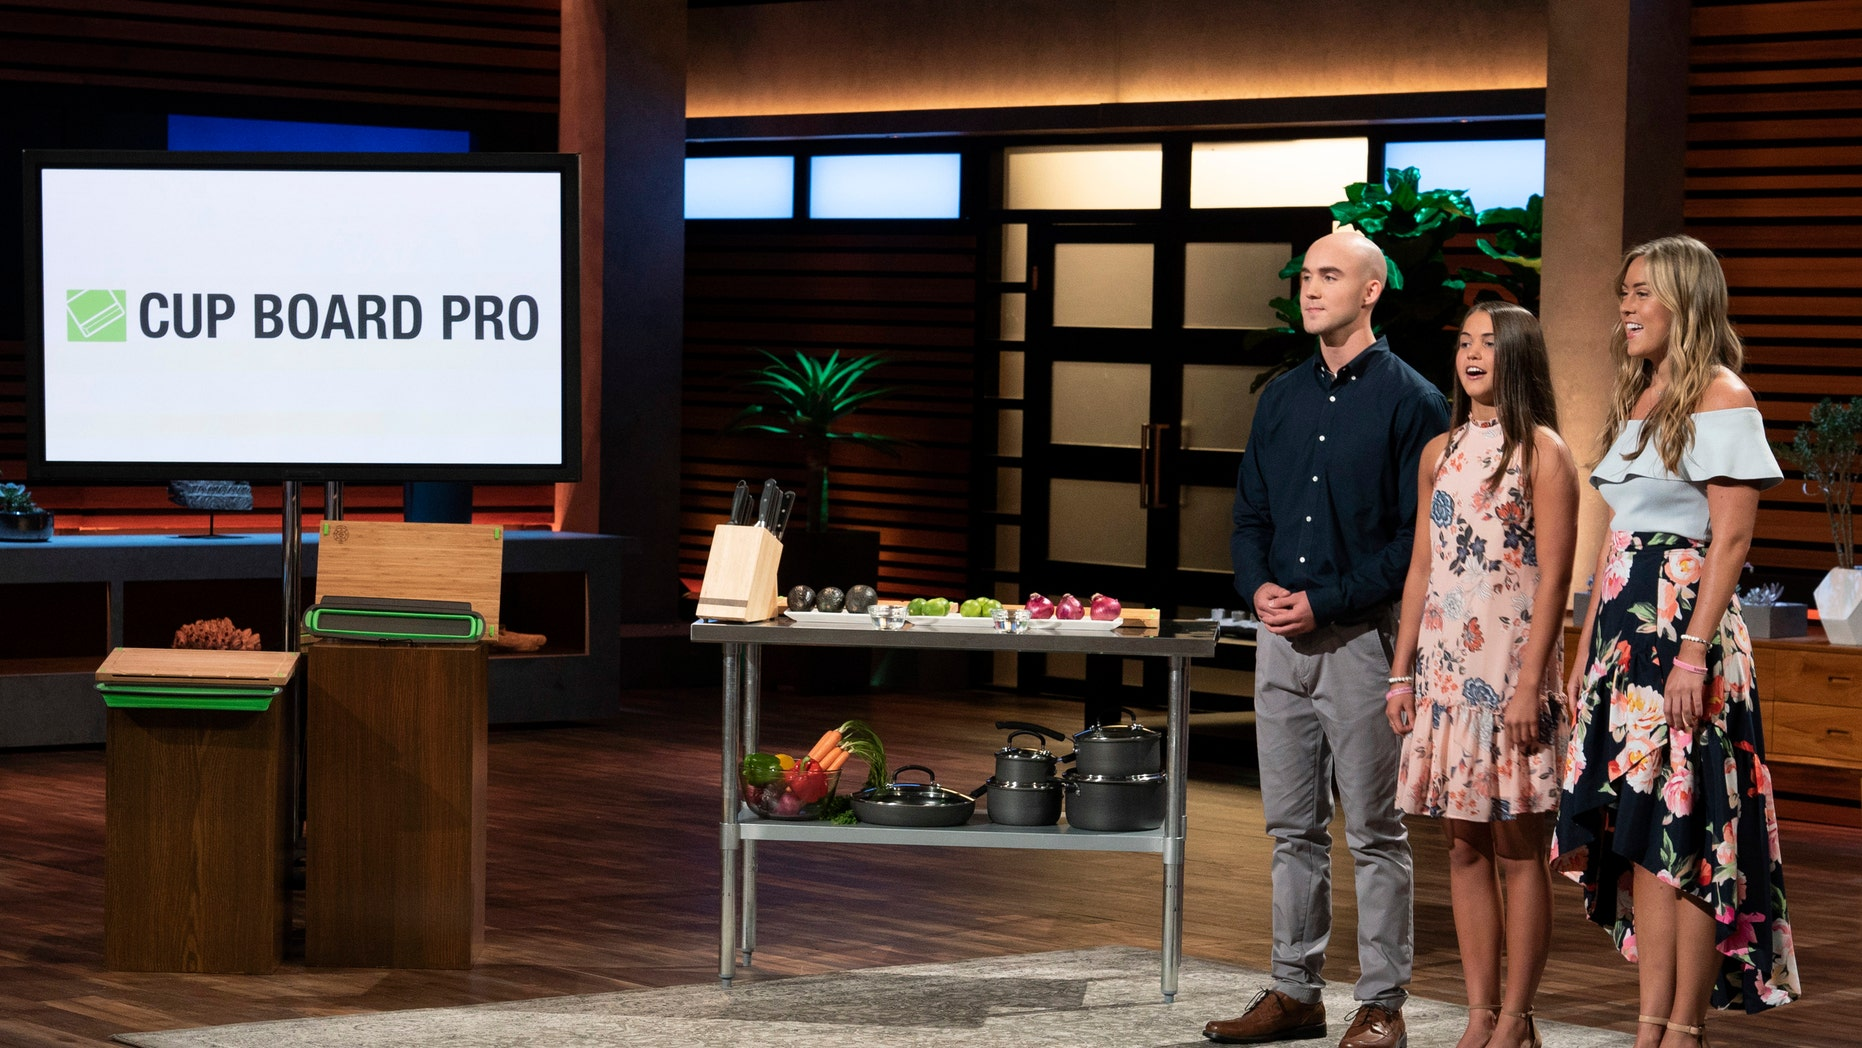 """In this image provided by ABC, Kevin Young's children present the product of their late father, Cup Board Pro, which is a chopping block that features a detachable bowl for clean up, on a """"Shark Tank"""" episode that aired on Sunday, Oct. 21, 2018."""